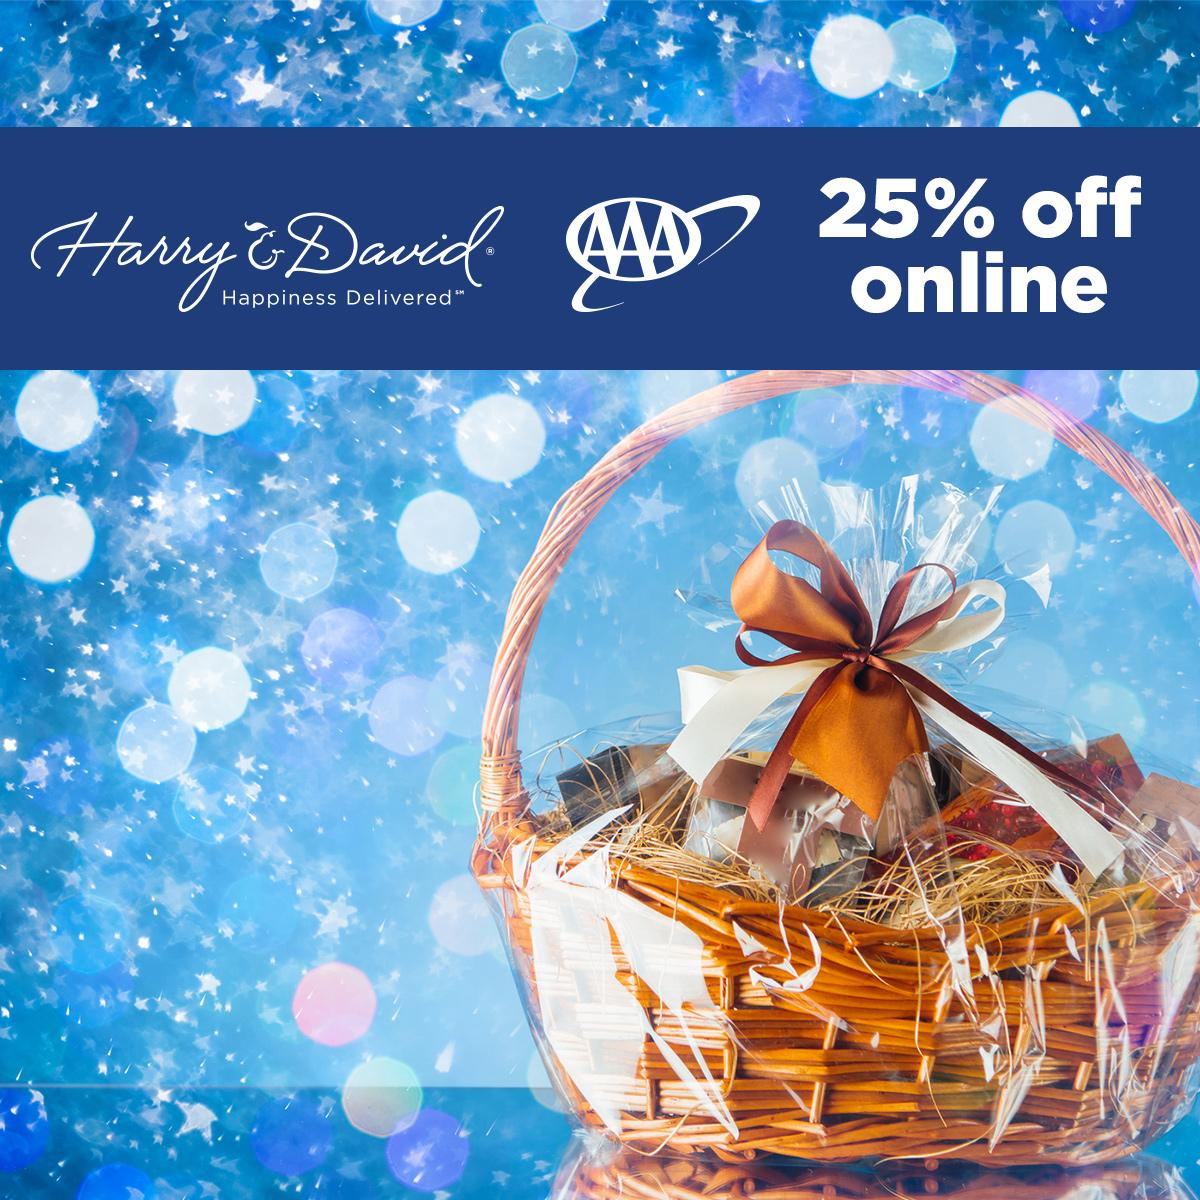 It's #FeaturedDiscountFriday, here to make the holidays delicious!    Now thru December 31st, AAA Members receive 25% off while shopping online for Harry & David premium gifts. Shop online now using promo code 25AAA     #HolidayShopping #AAADiscounts